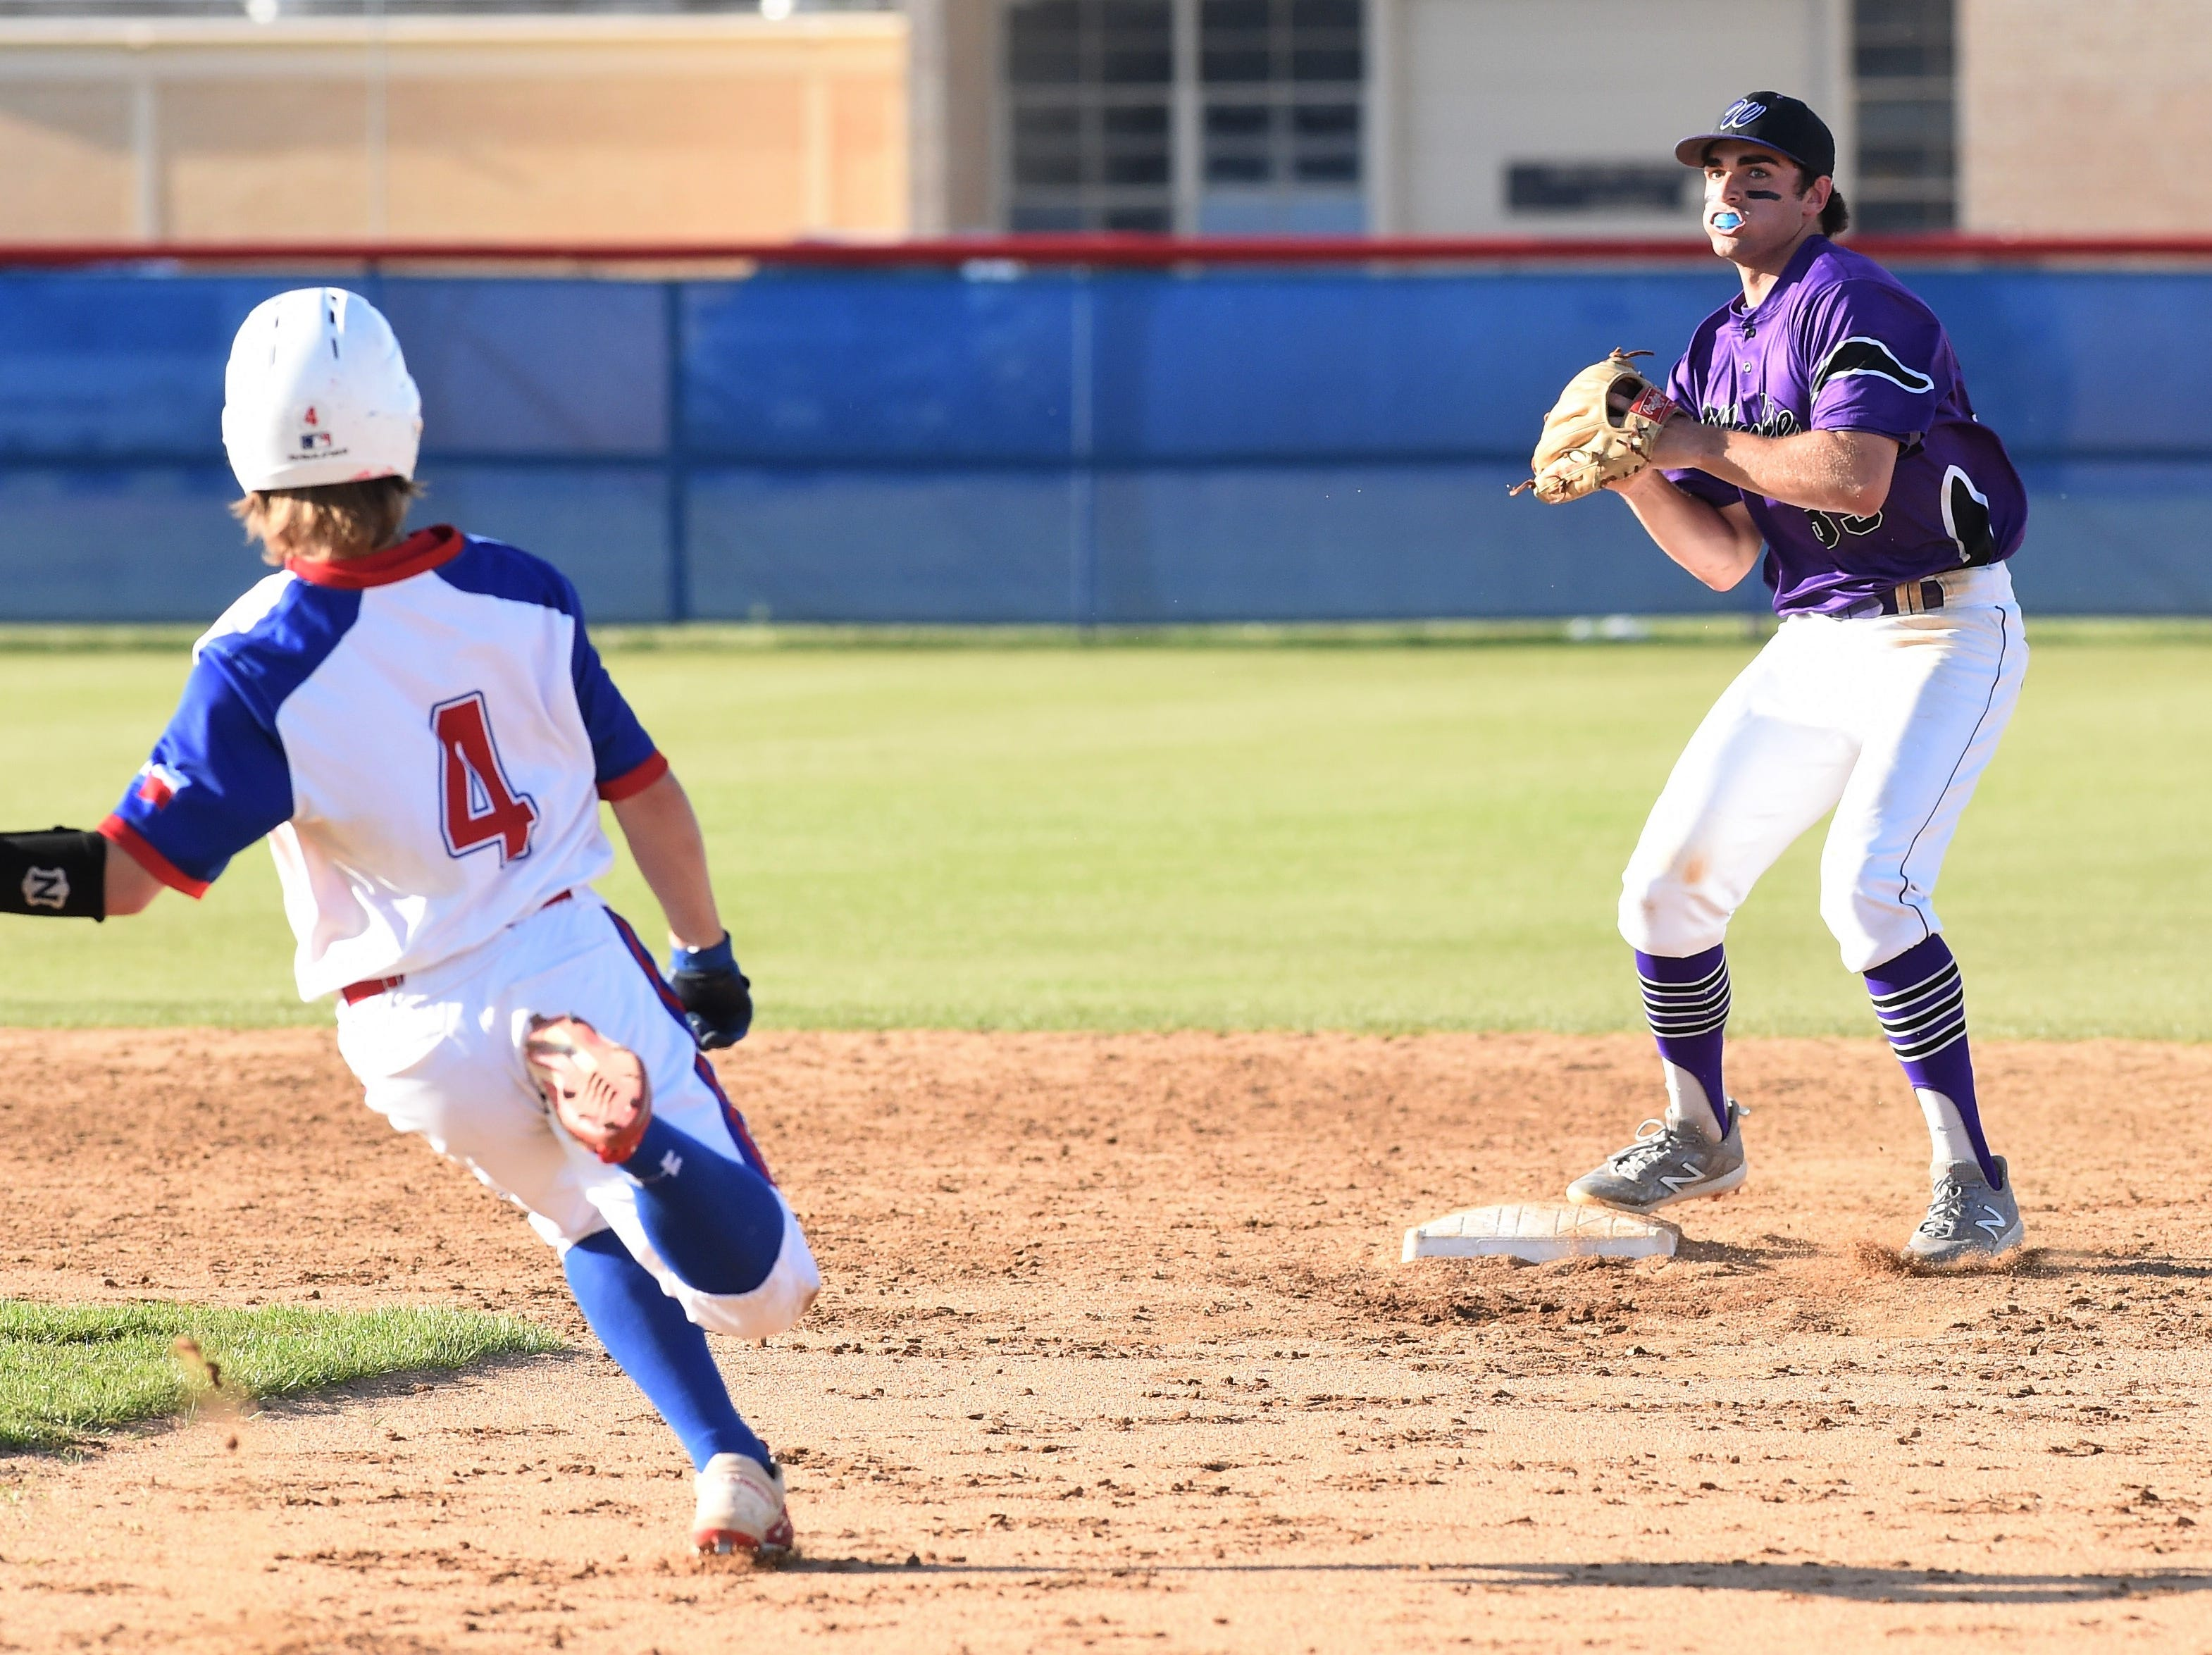 Wylie shortstop Jaxon Hansen (39) steps on second before completing a double play against Cooper at Cougar Field on Tuesday, April 9, 2019. Hansen and the Bulldogs turned three double plays in the 11-5 win.